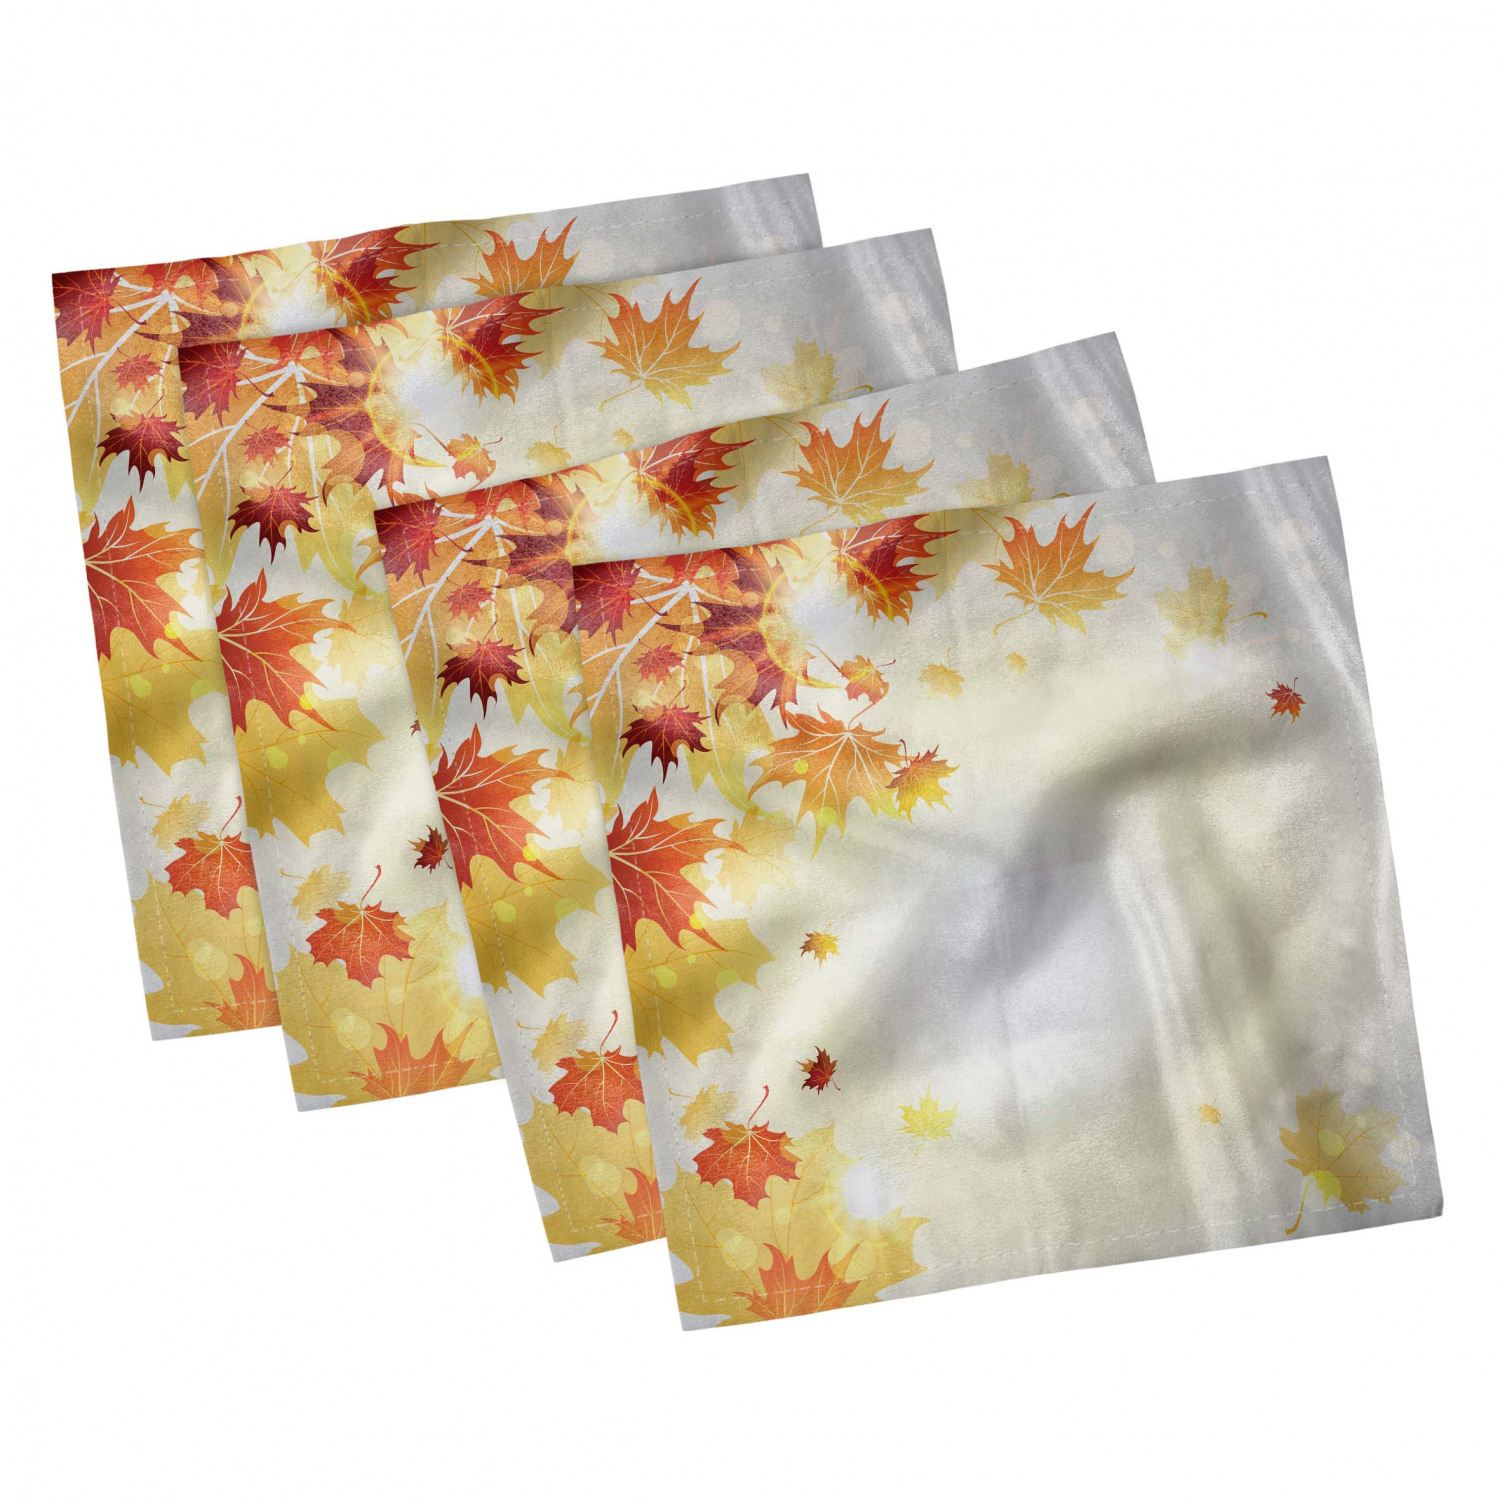 thumbnail 53 - Ambesonne-Autumn-Fall-Decorative-Satin-Napkins-Set-of-4-Party-Dinner-Fabric